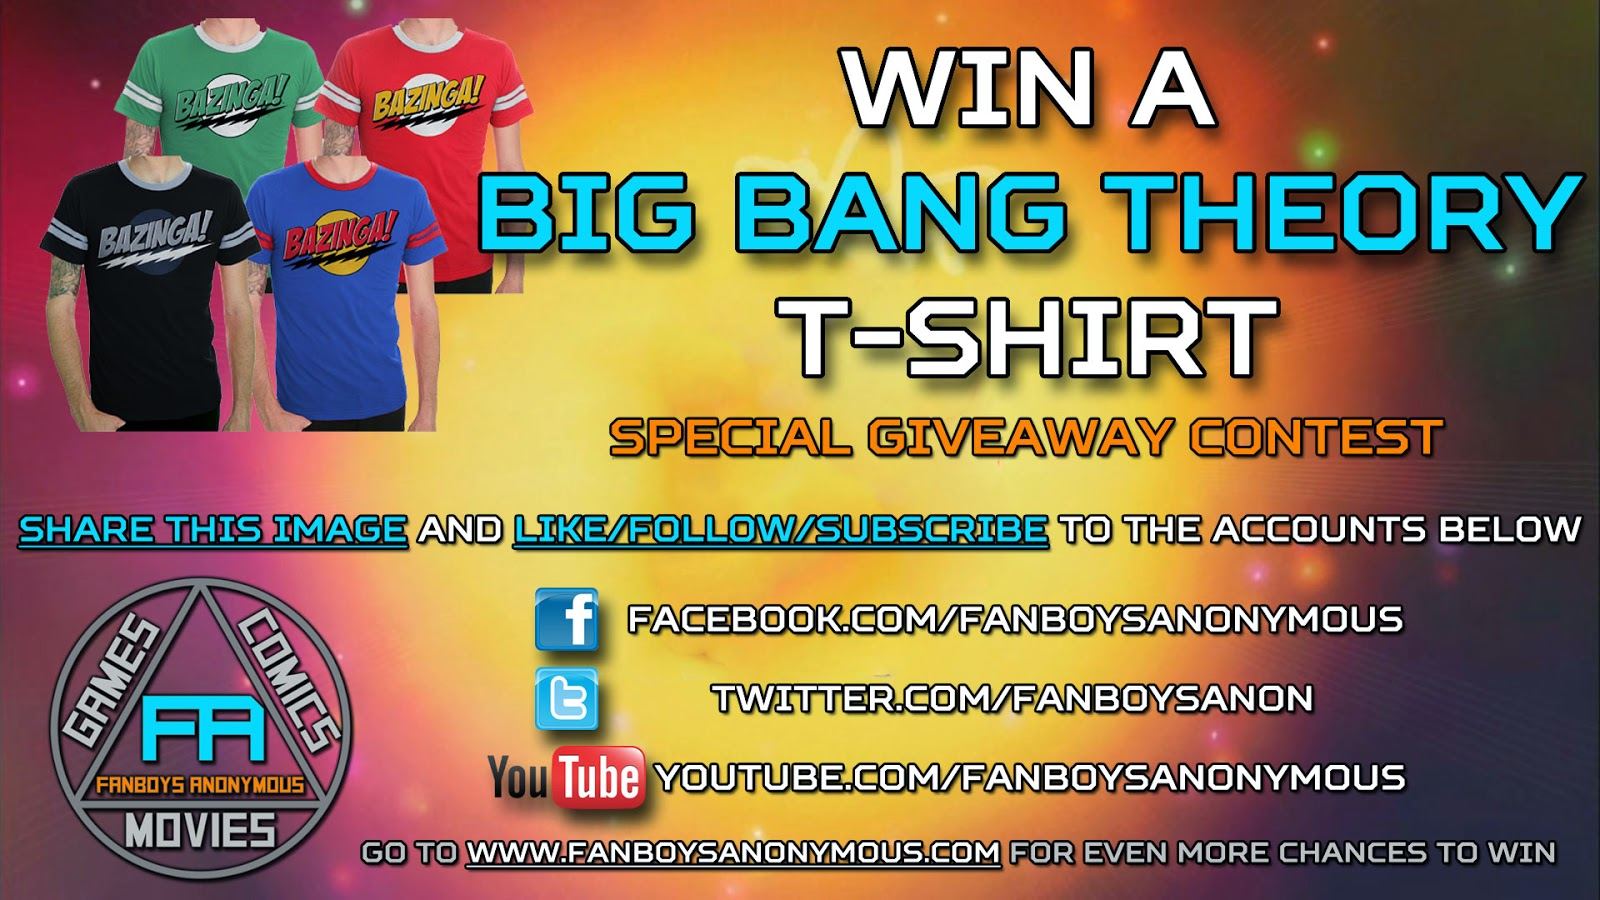 win a free Big Bang Theory t-shirt by subscribing to Fanboys Anonymous